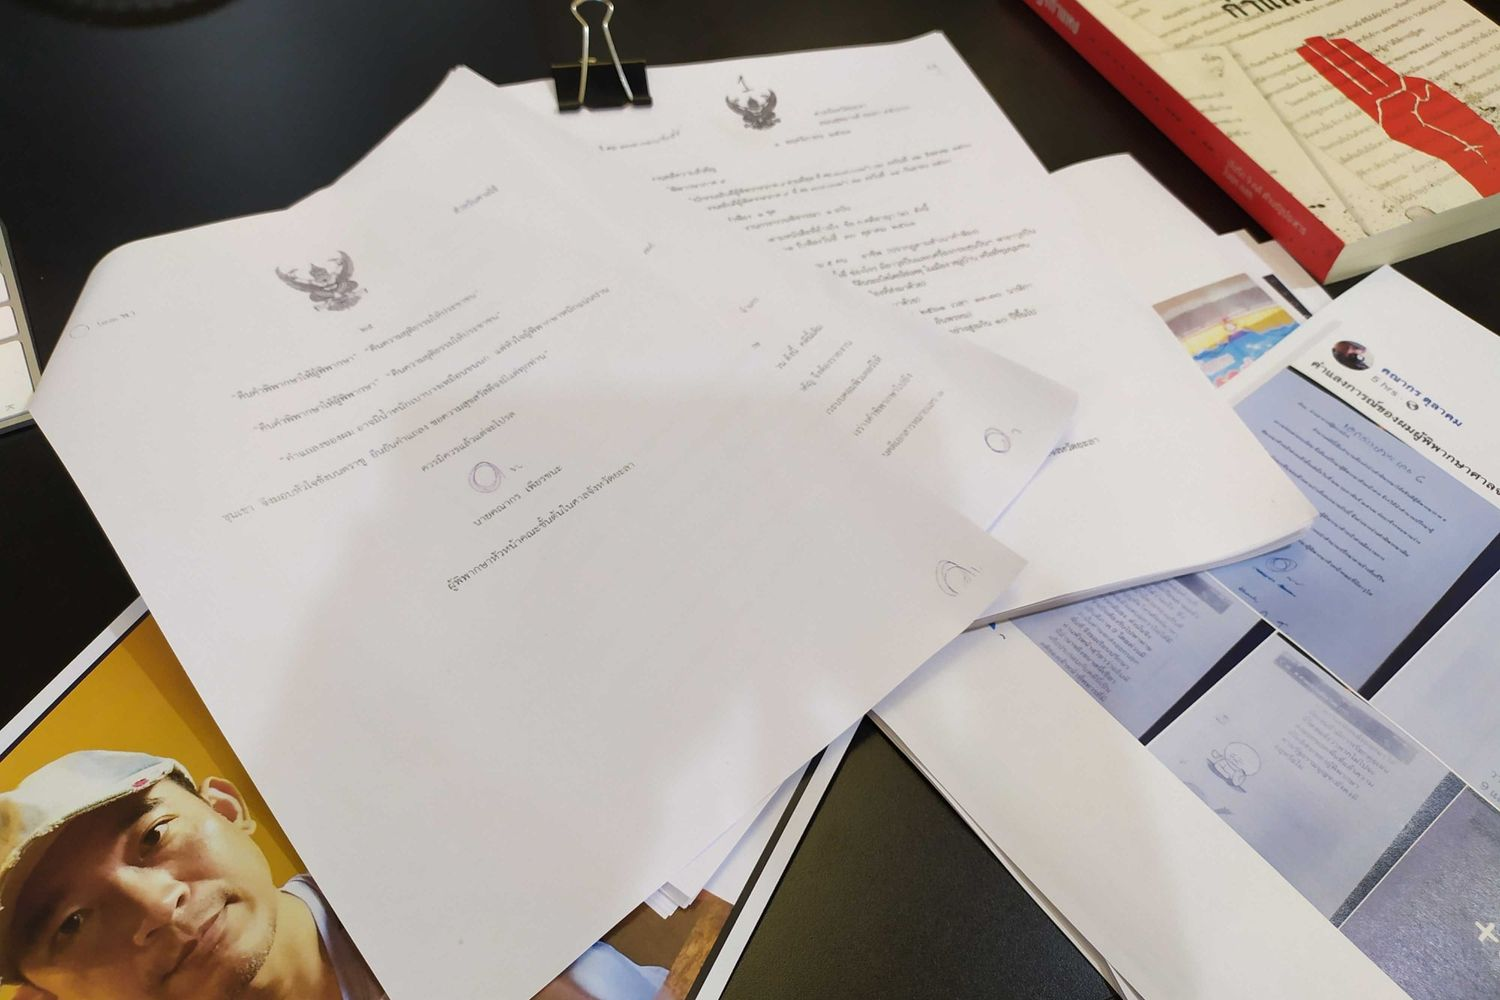 The 25-page statement allegedly from Judge Khanakorn Pianchana is shown on the Facebook page of Piyabutr Saengkanokkul, secretary-general of the Future Forward Party, on Friday. (Photo from Piyabutr Saengkanokkul - ปิยบุตร แสงกนกกุล Facebook)